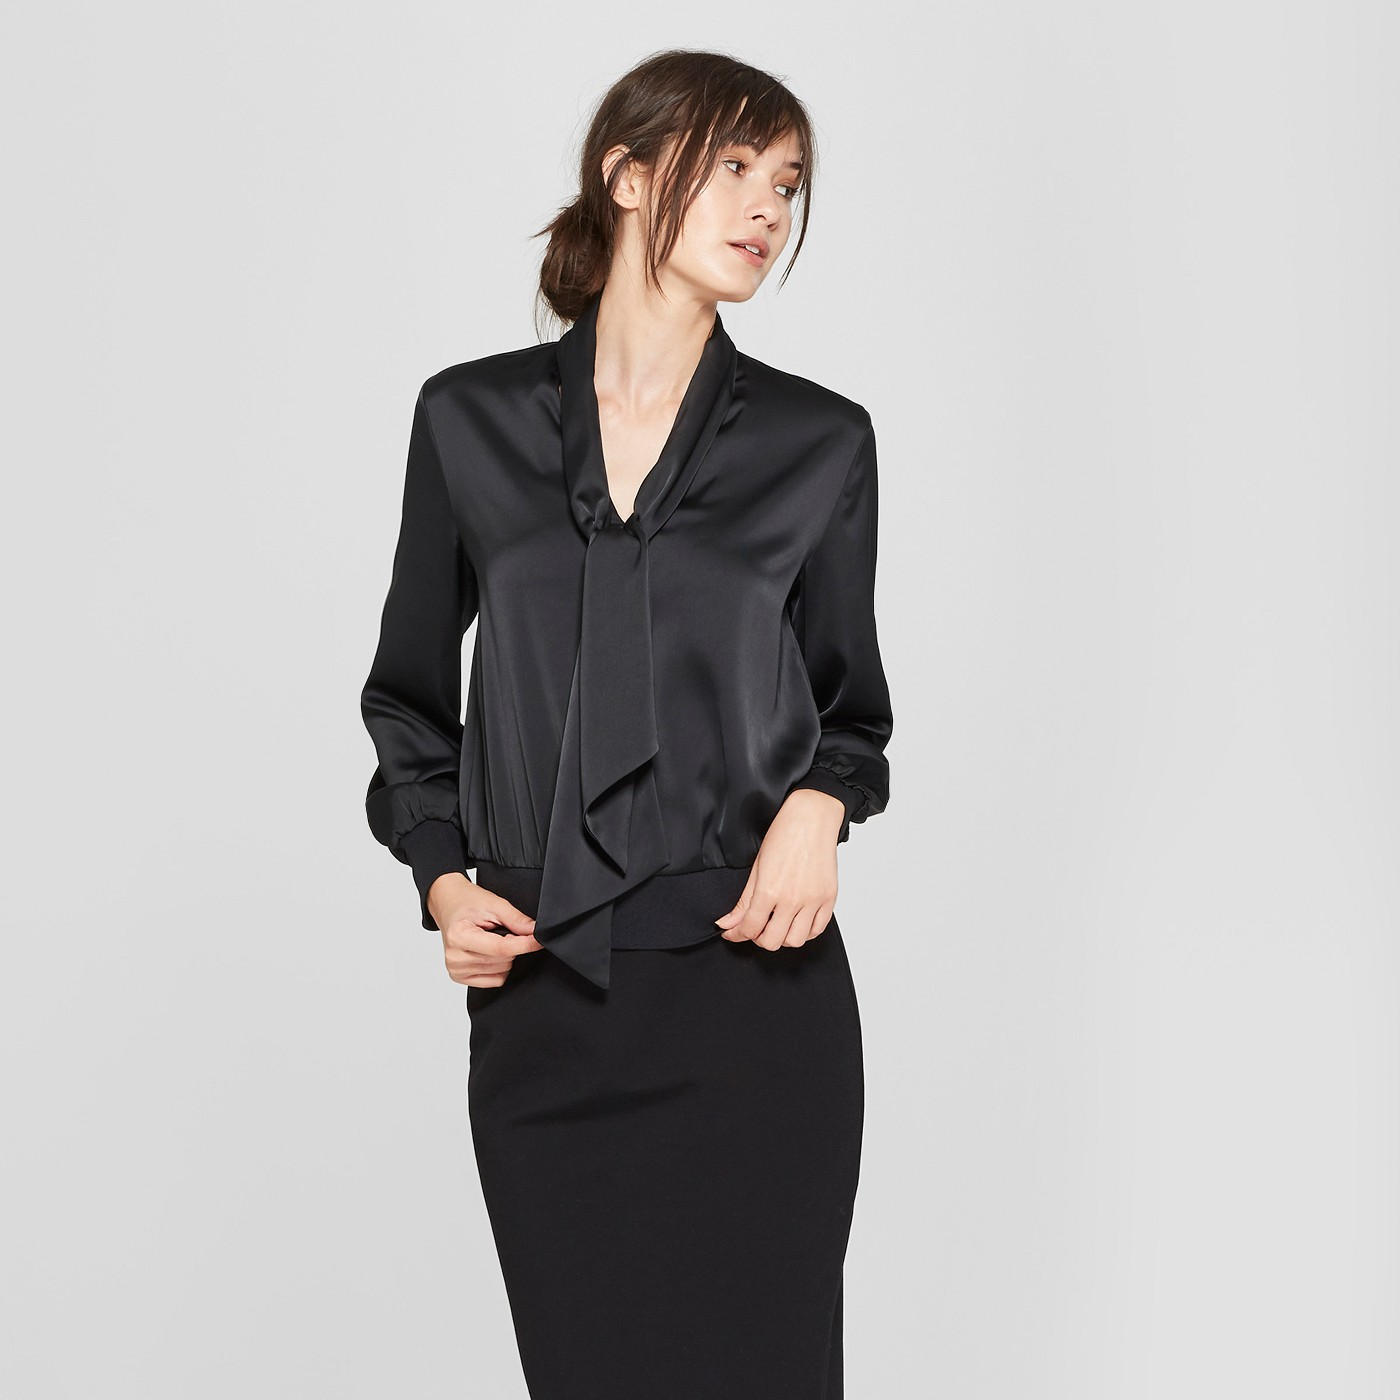 silk blouse from Target's Prologue line - JK Style